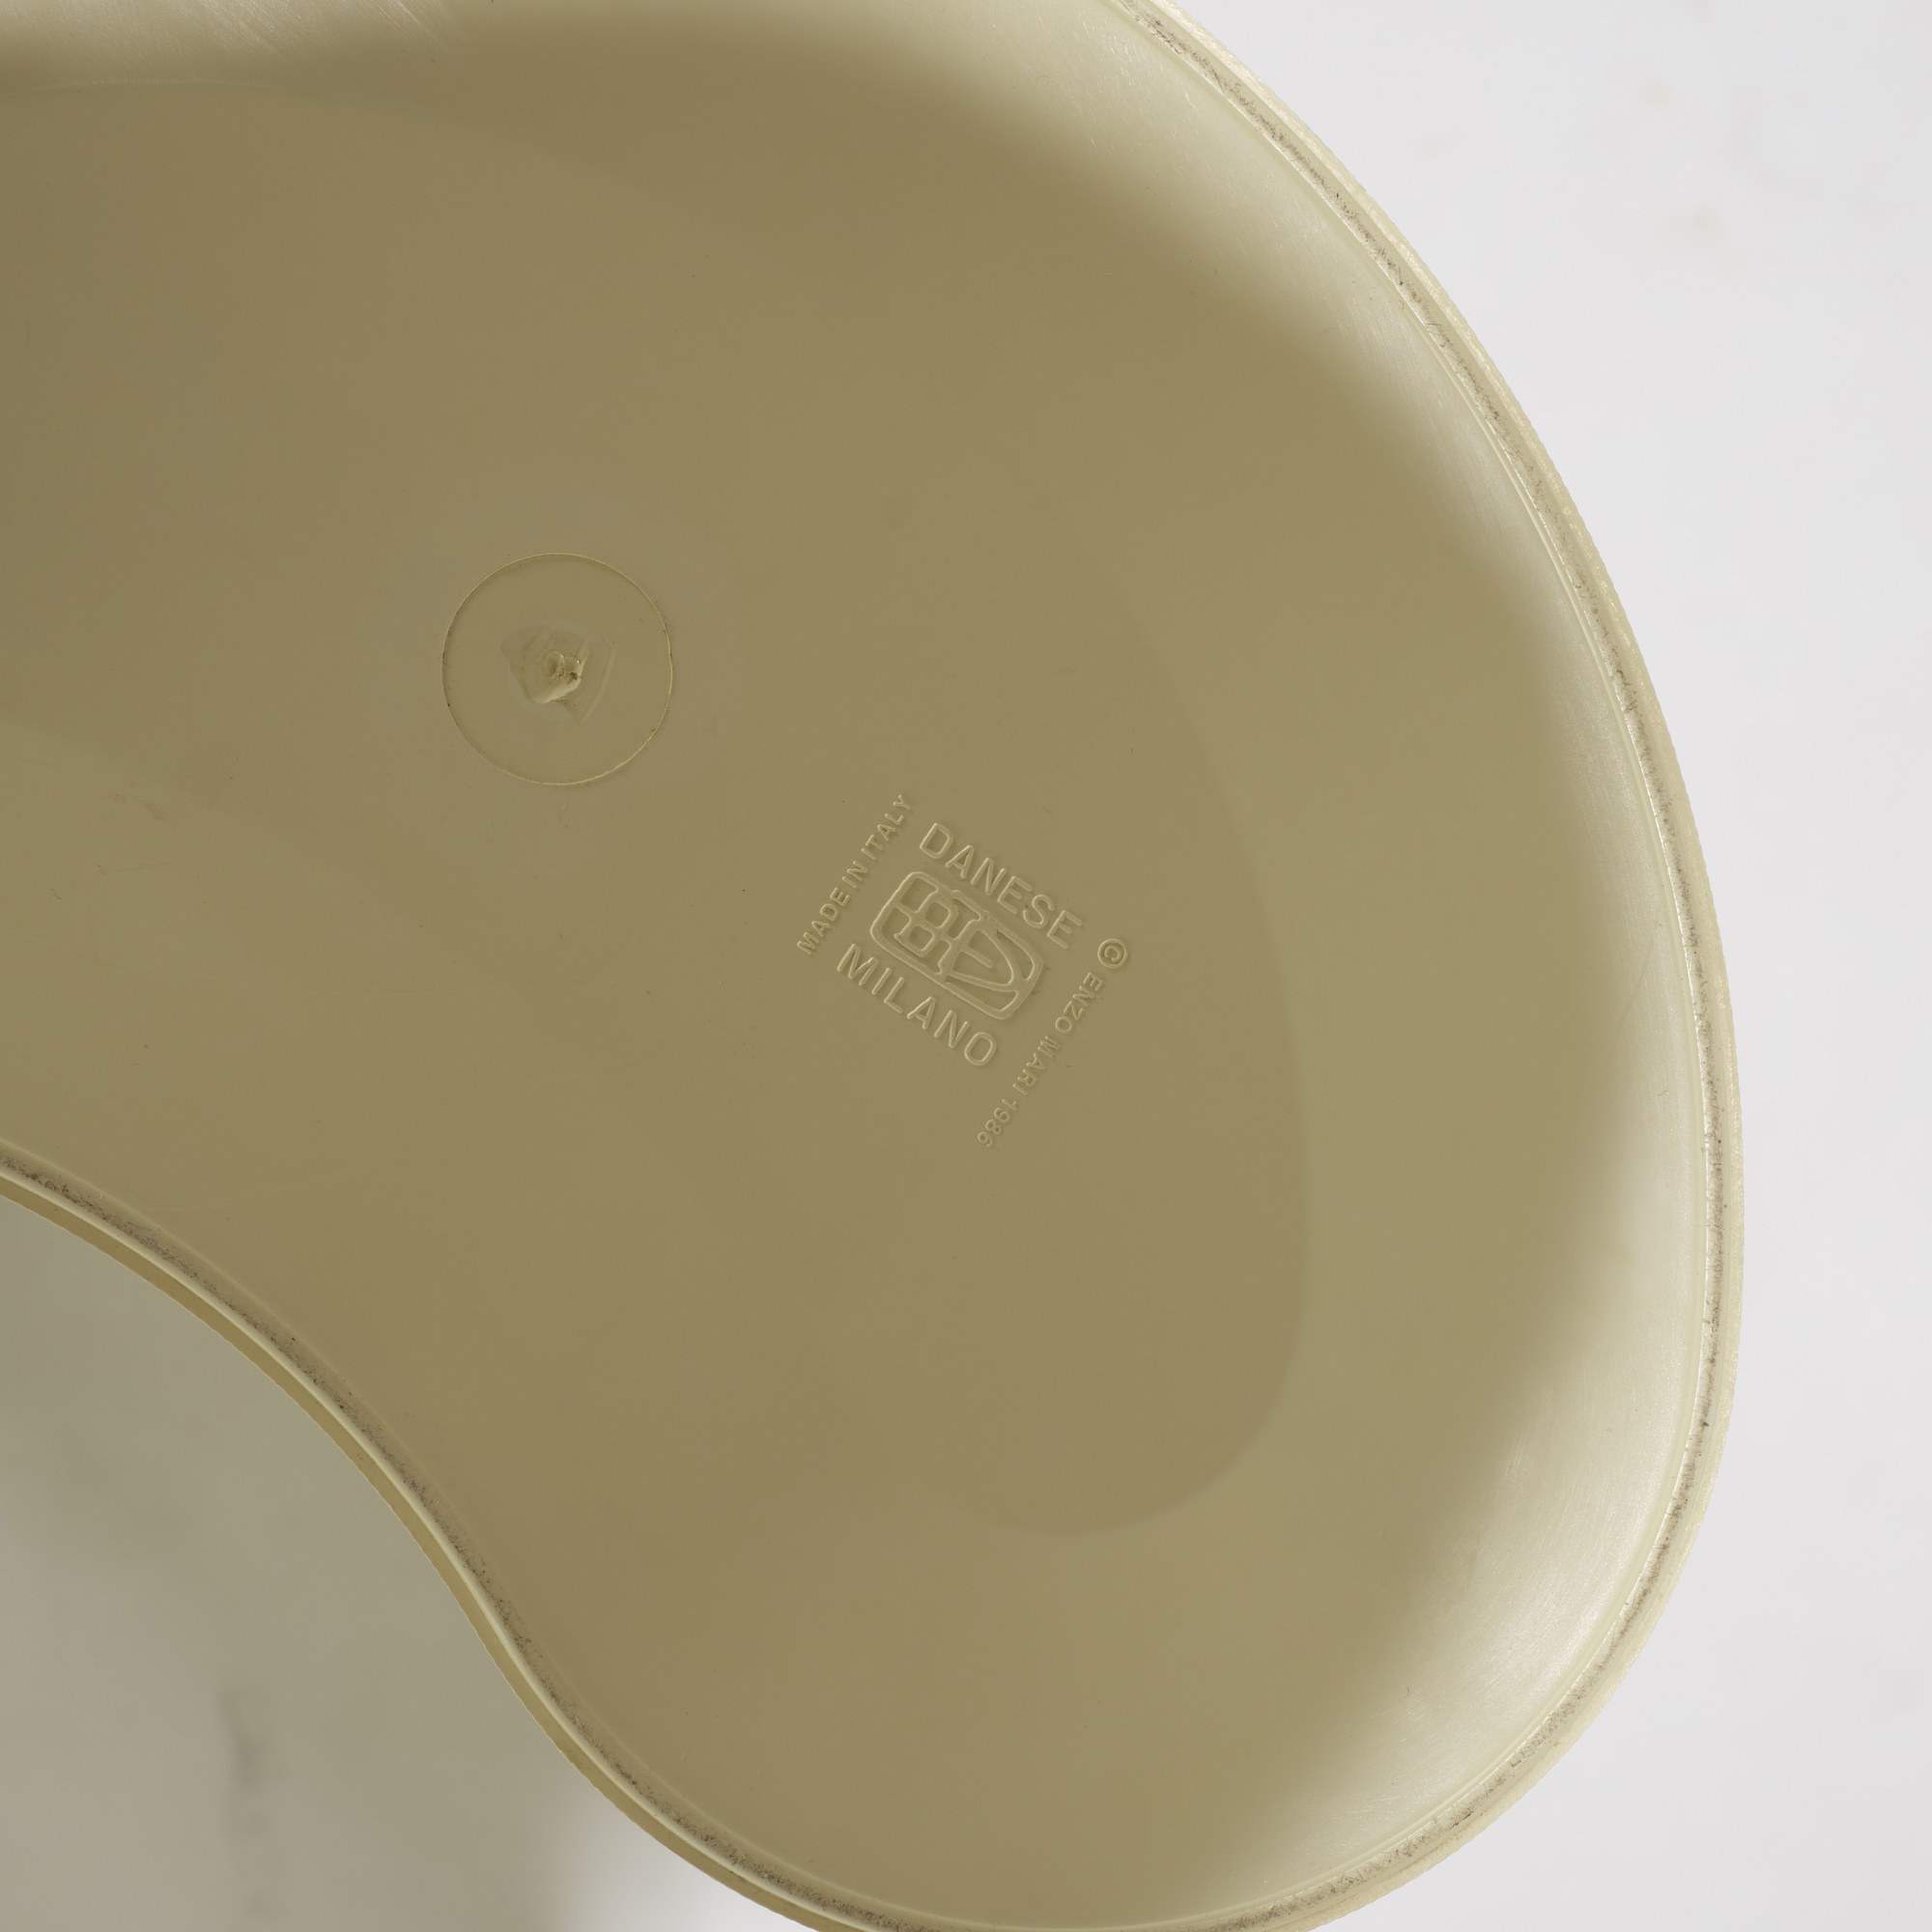 203: Enzo Mari / Chio wastepaper basket (2 of 2)